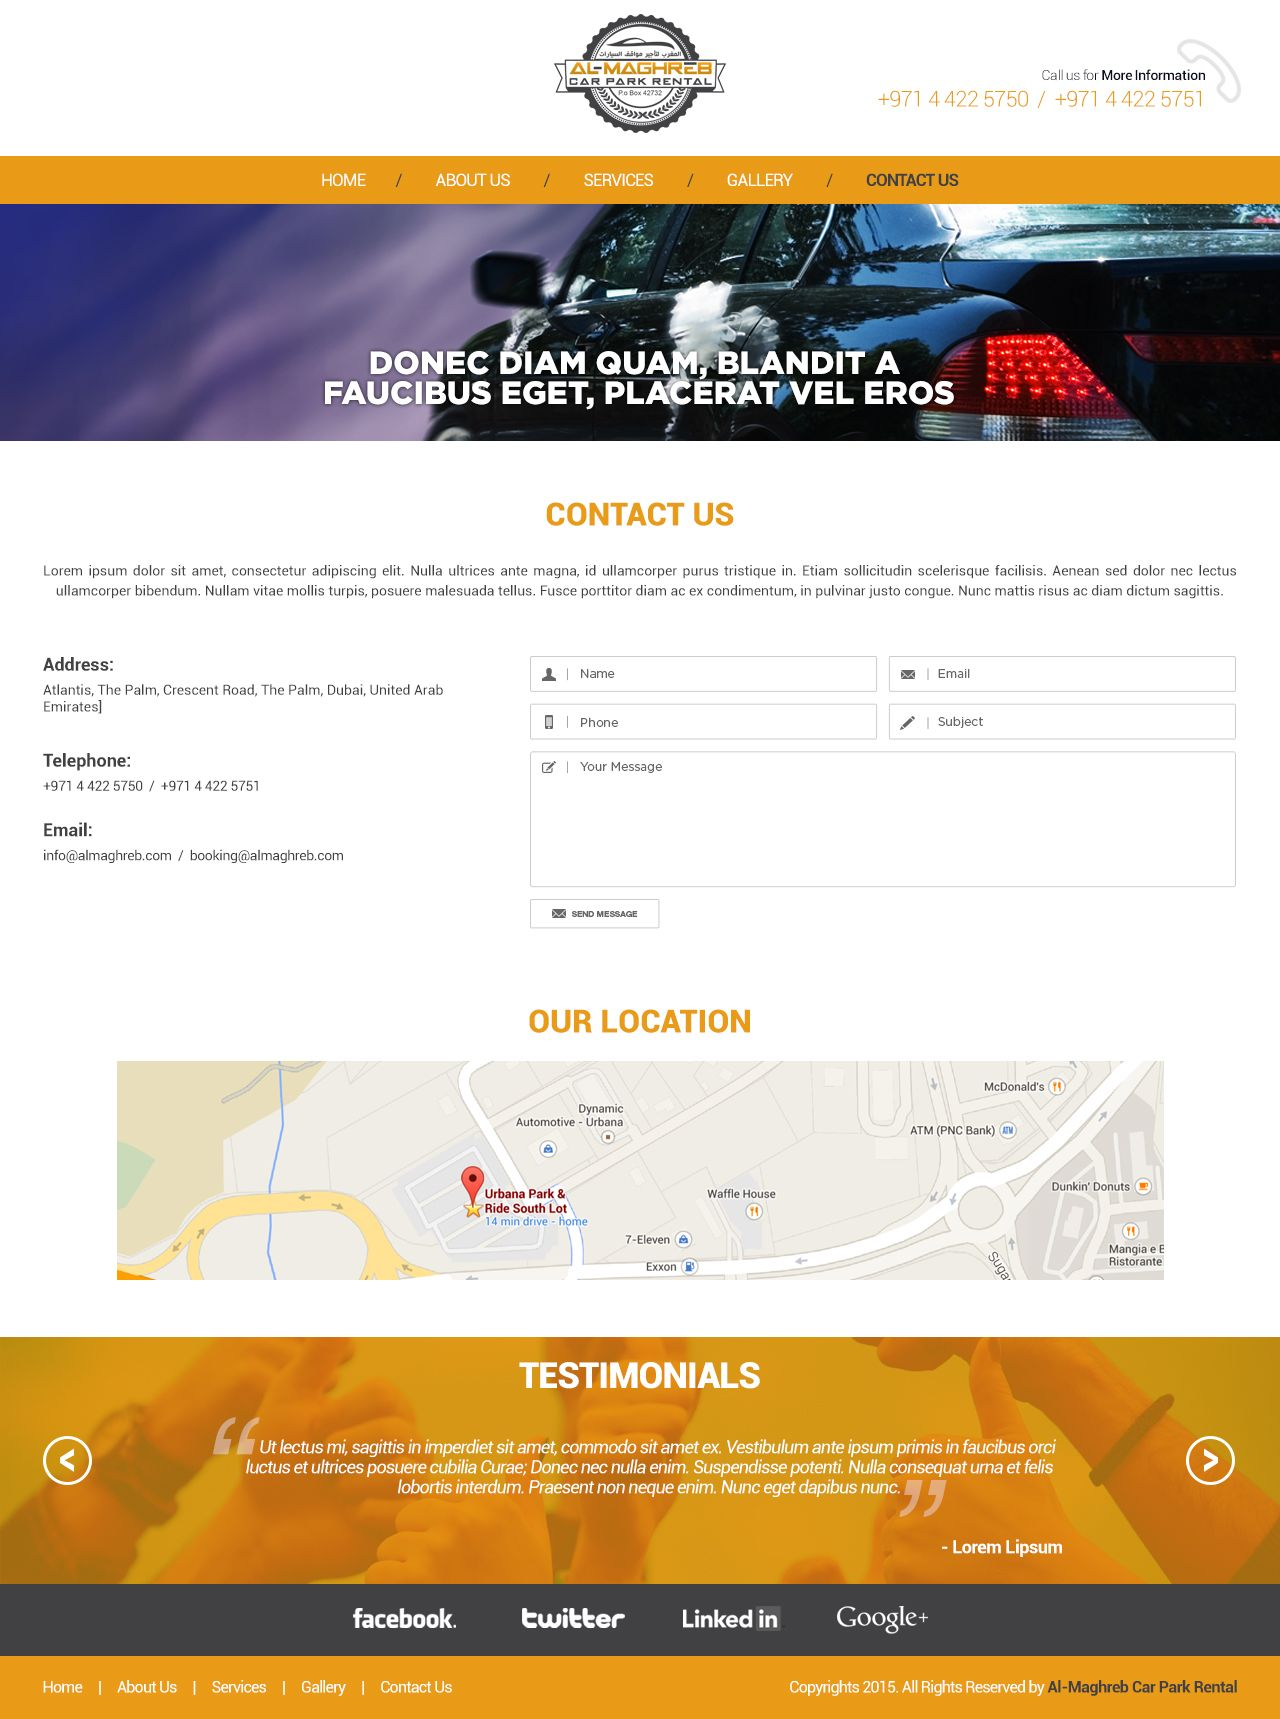 Car parking rental Contact us (With images) Web design